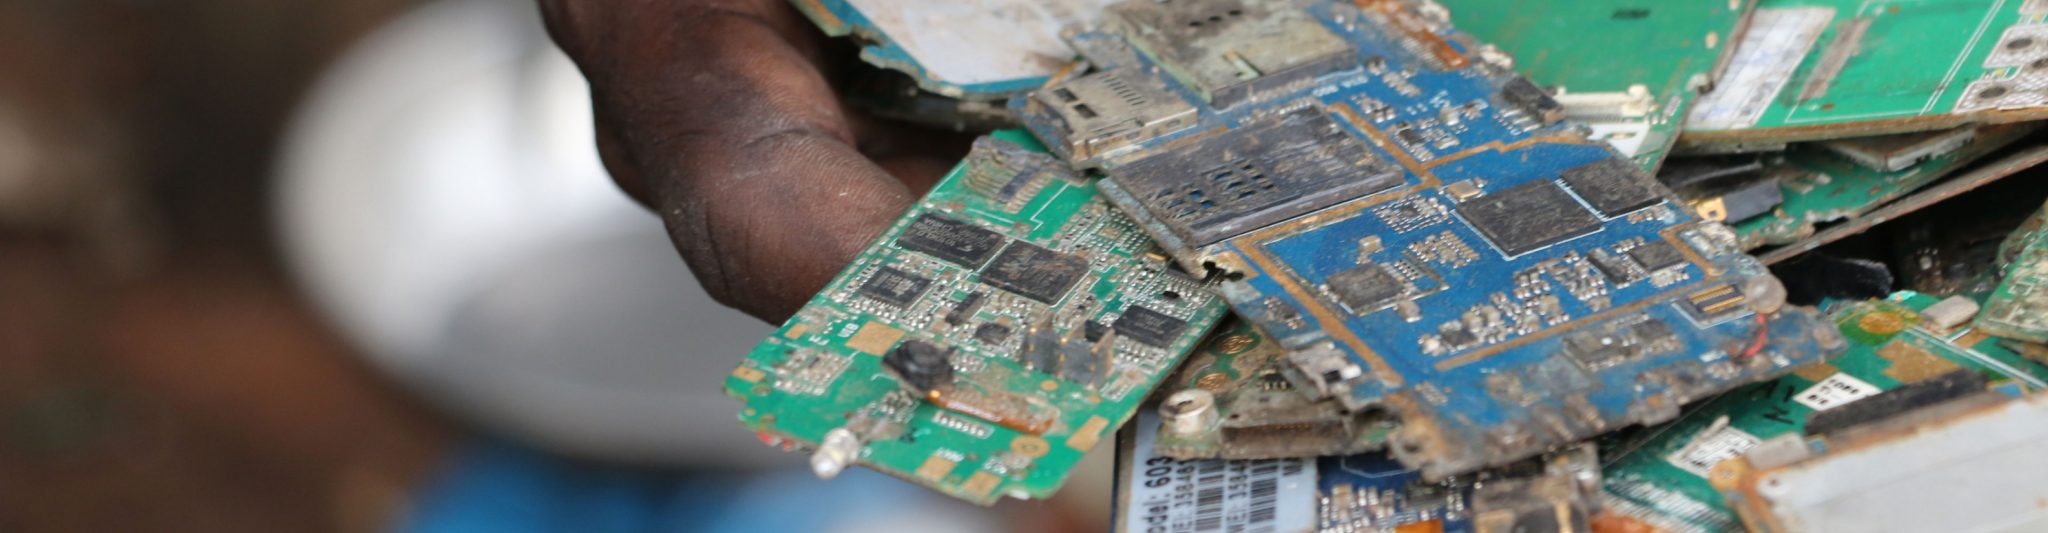 Reducing Electronic Waste Fairphone Electronics Learning Circuits Yuppie Gadgets